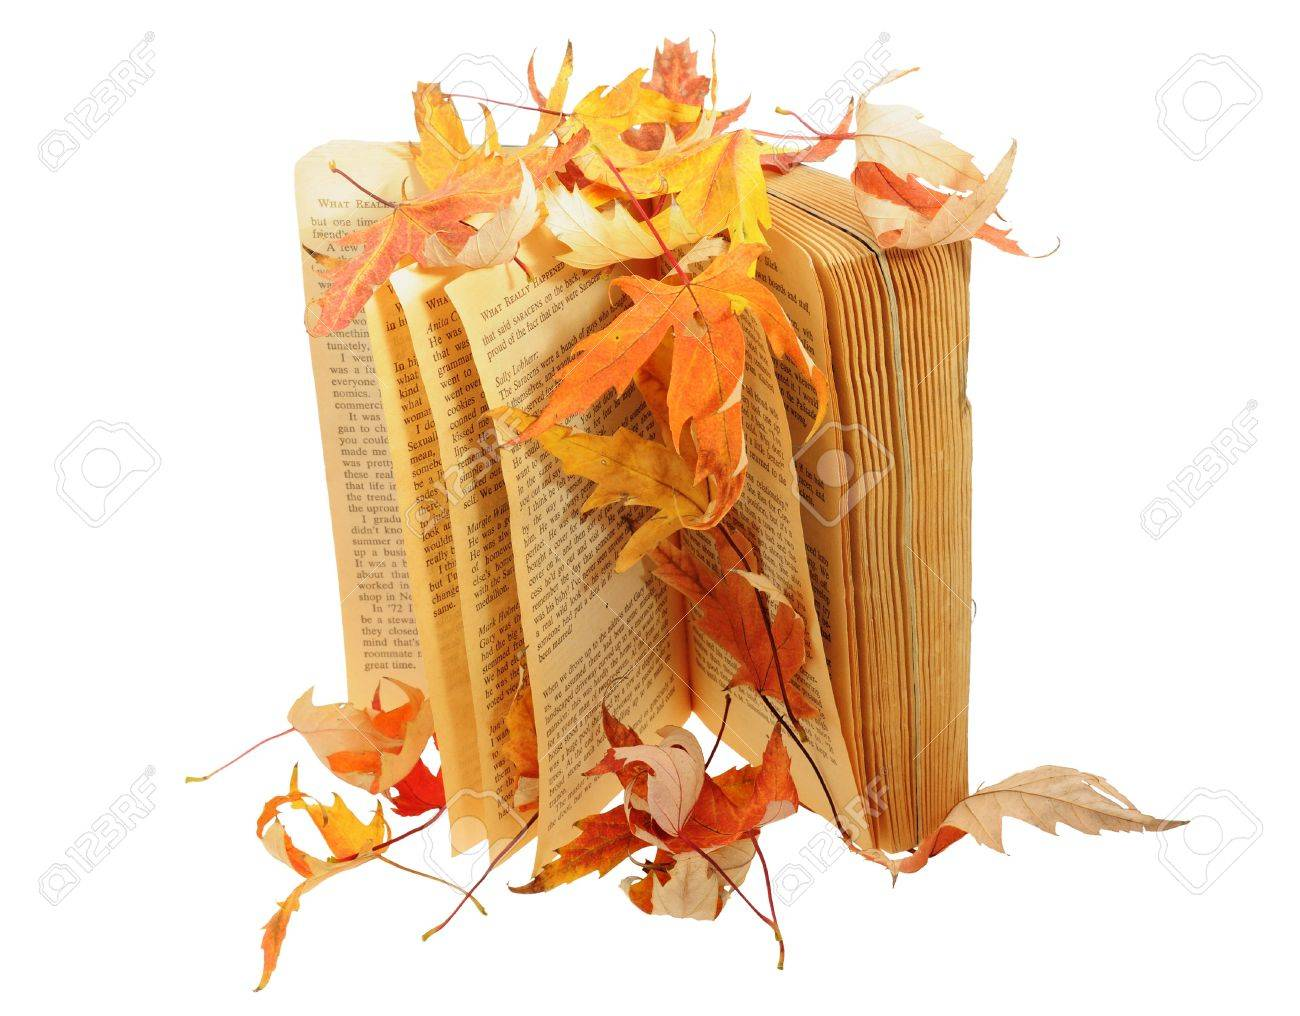 Book under leaves isolated - 8040469